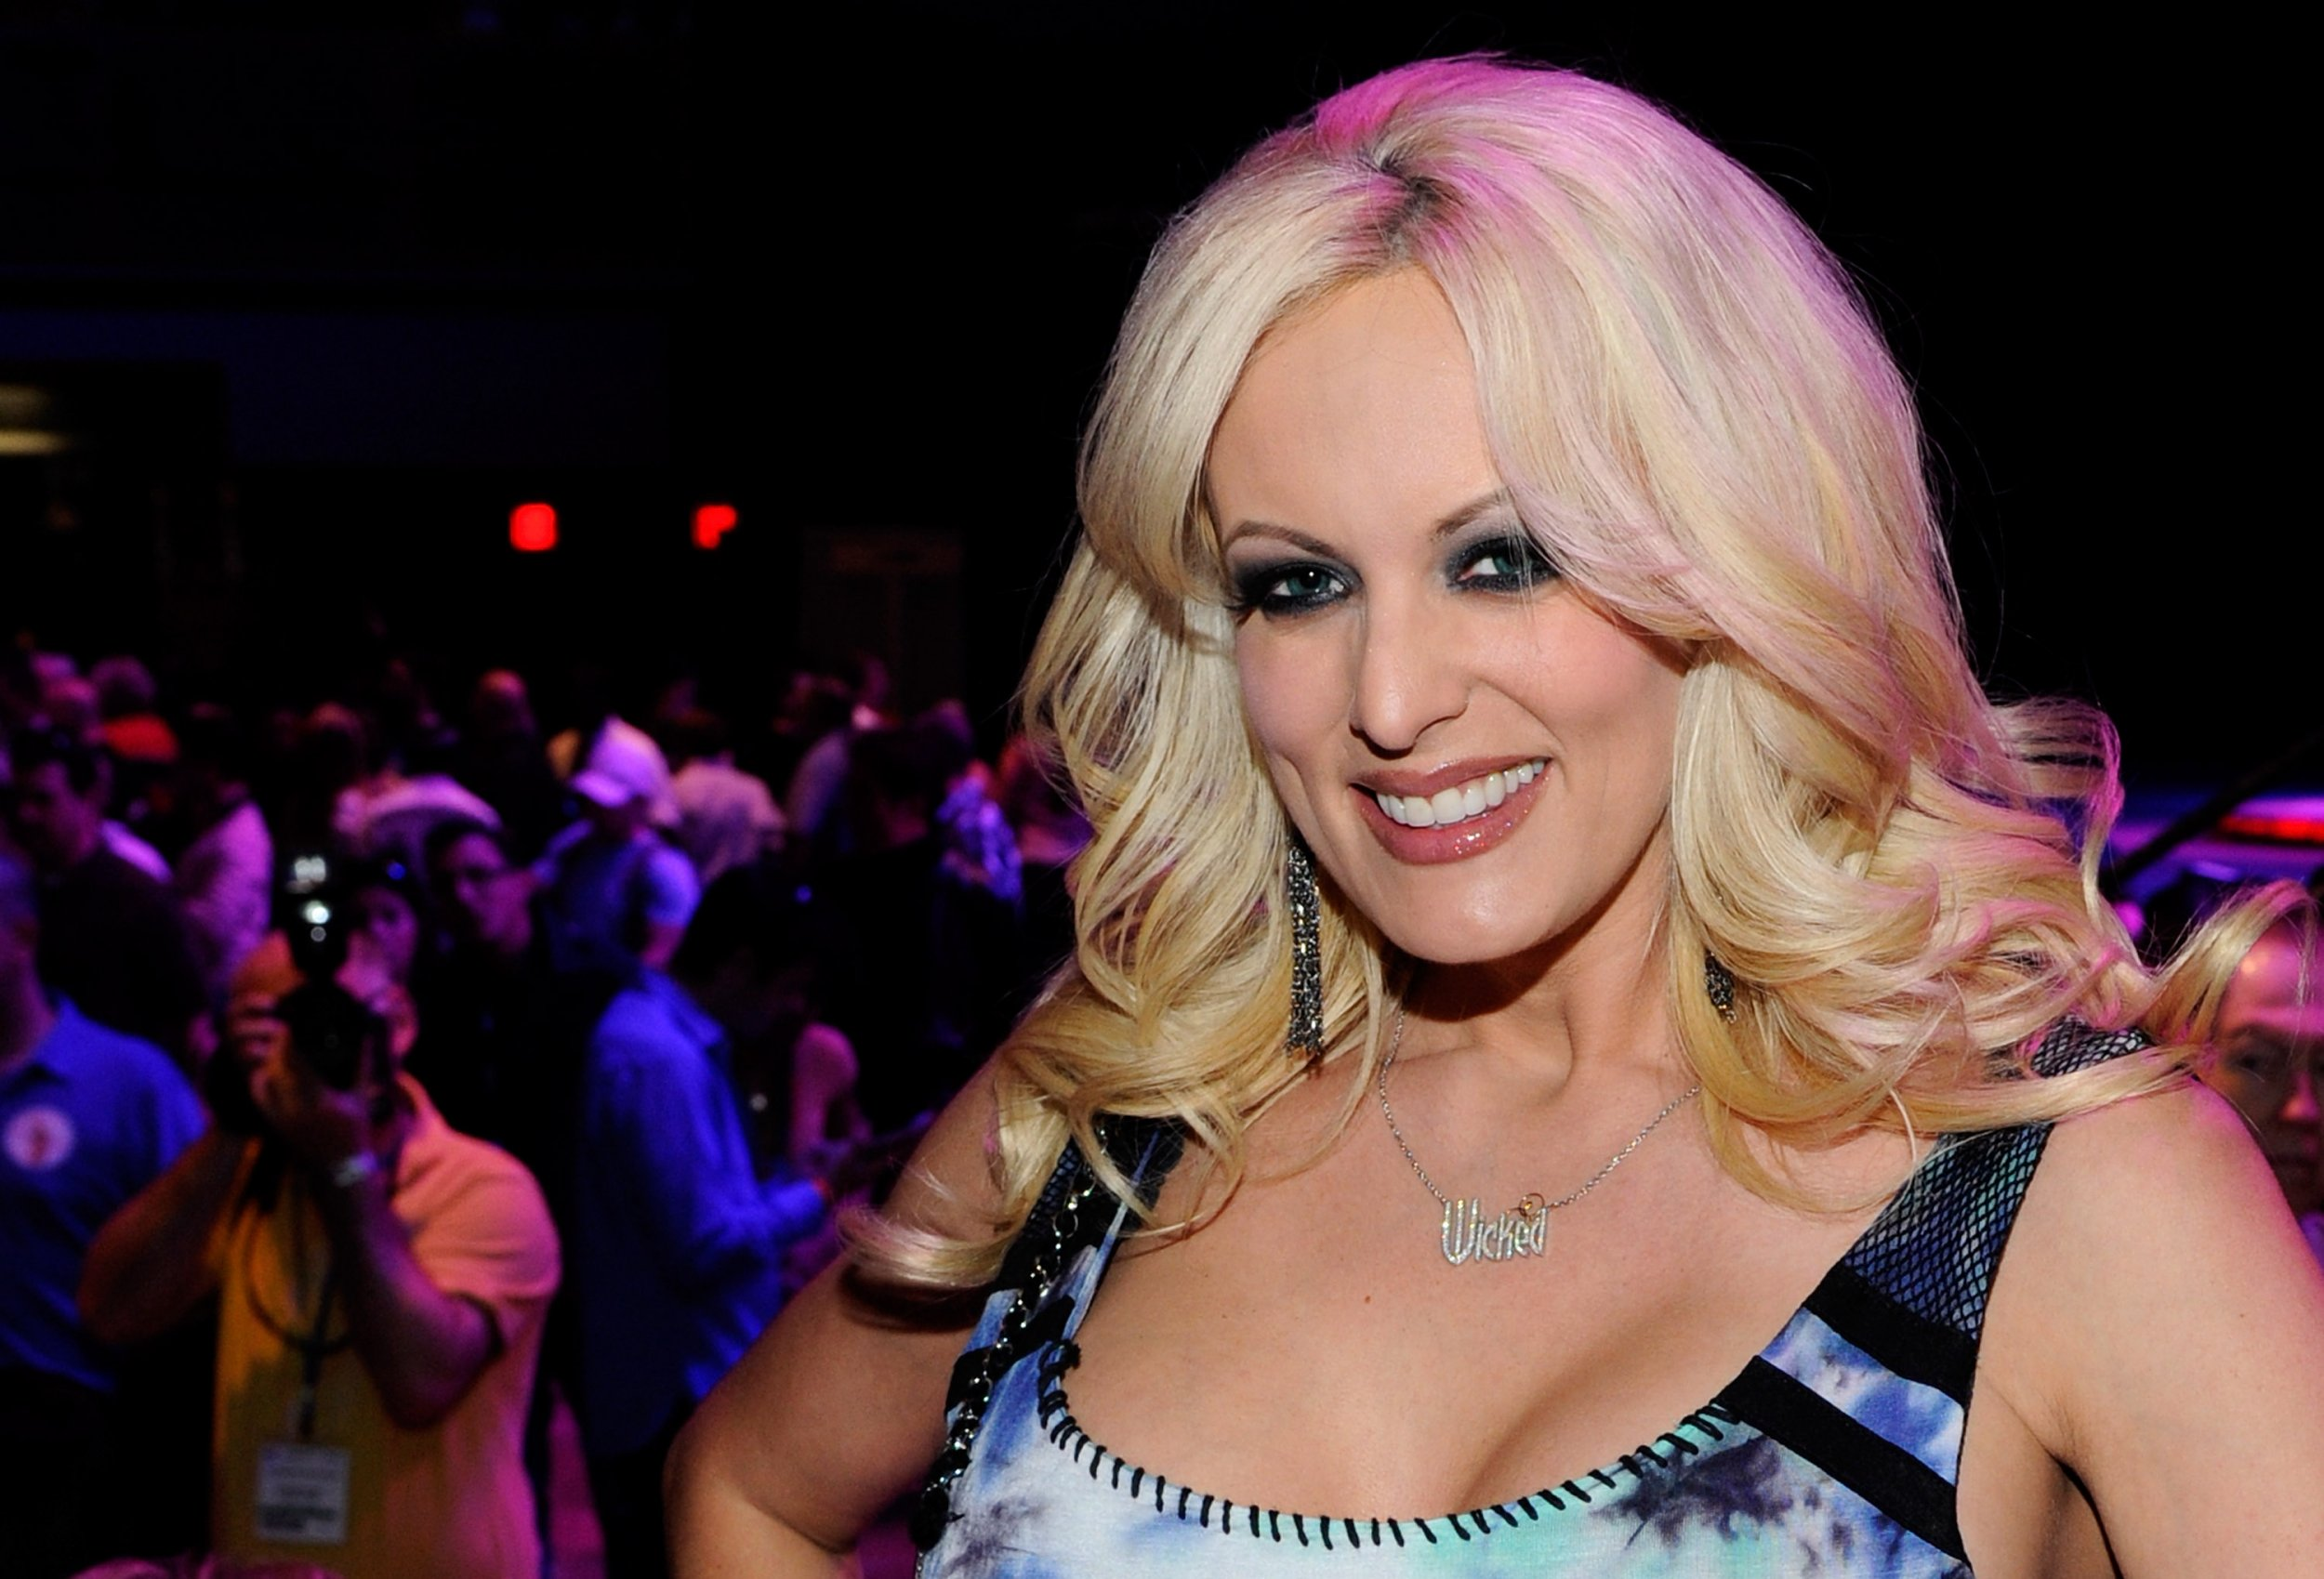 Trump lawyer arranged porn star payment for her silence in October 2016